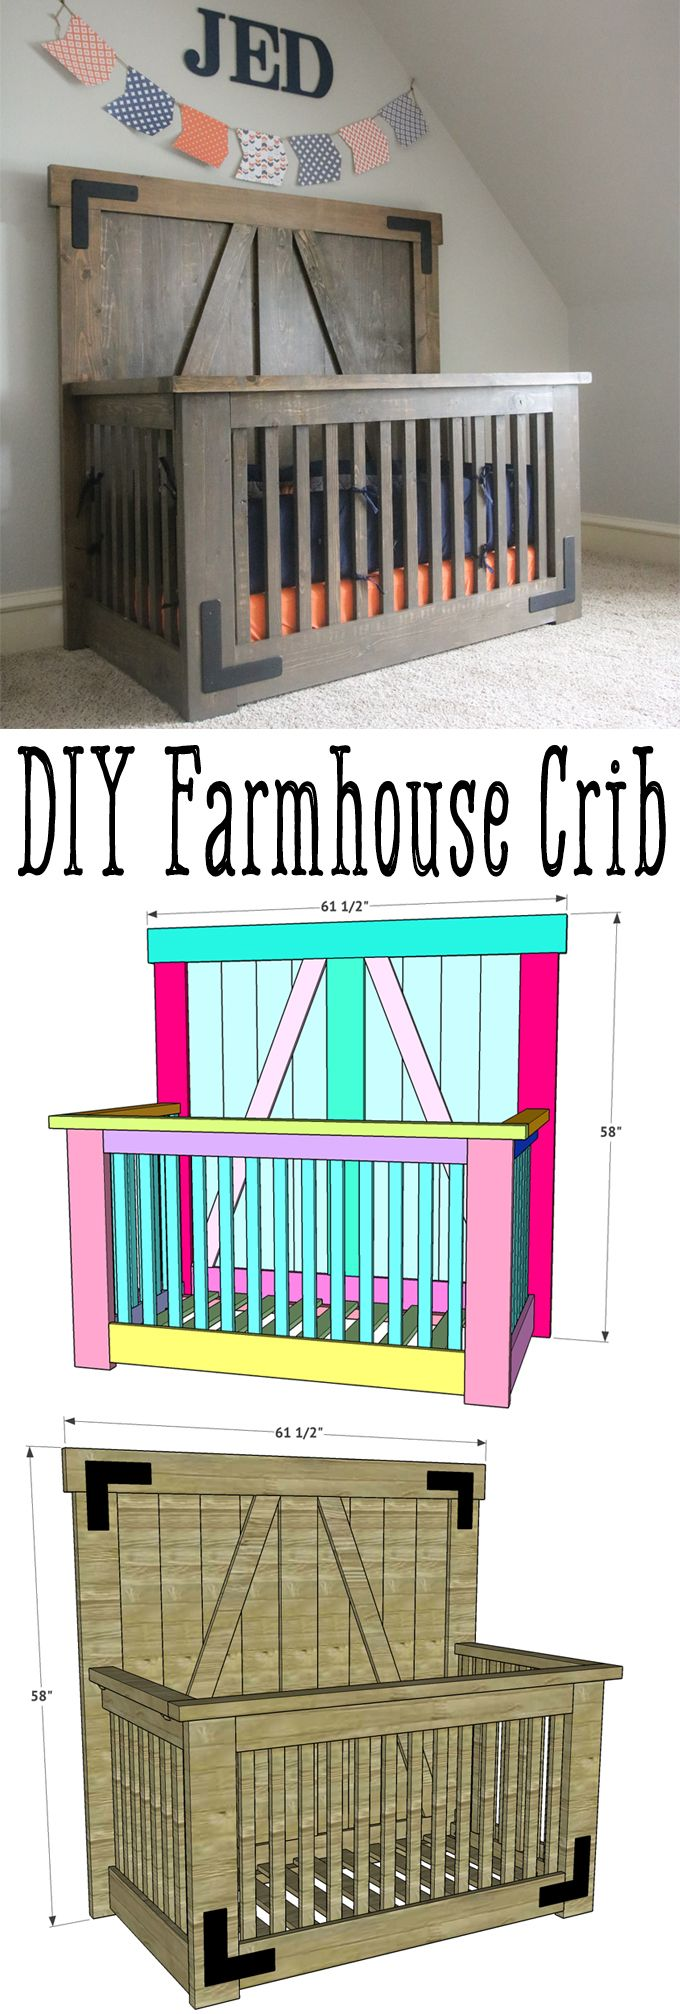 Jameson panel crib for sale - Love This Diy Farmhouse Crib By Shanty2chic Free Plans And Tutorial On How To Build